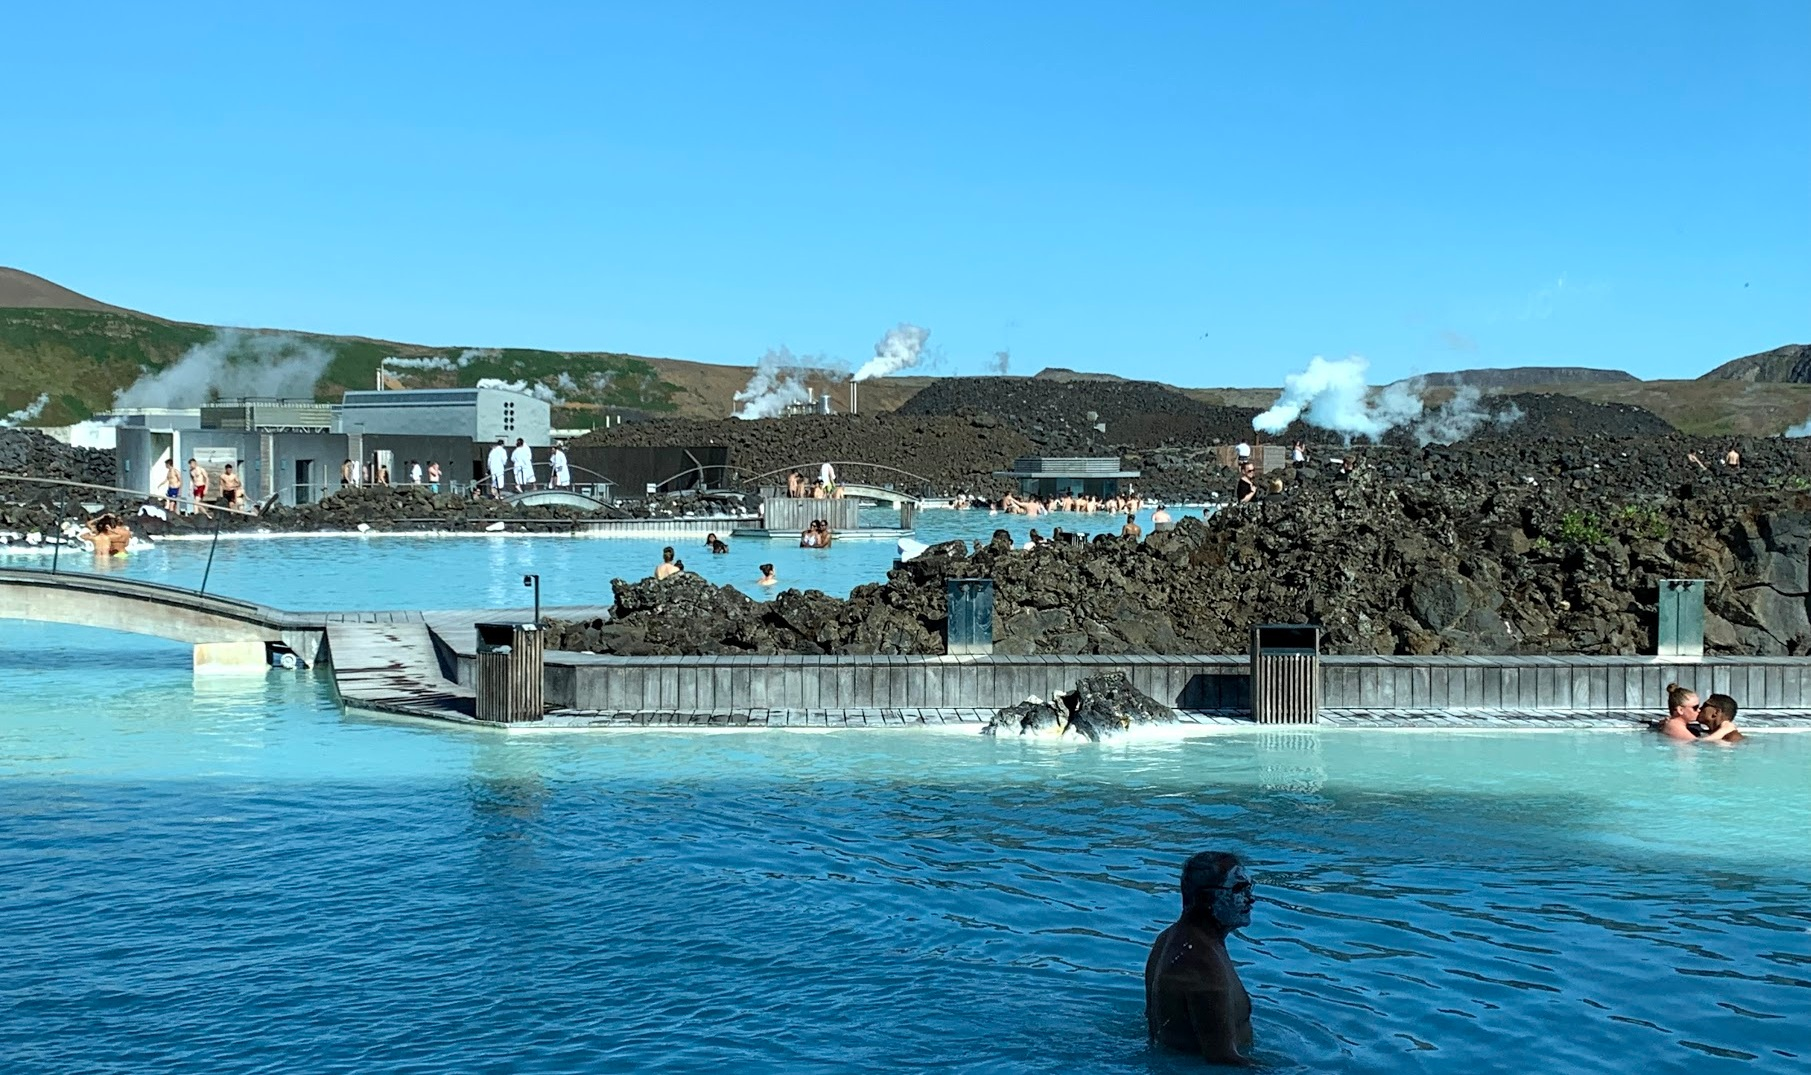 A true photo of the Blue Lagoon and thermal plant beyond….